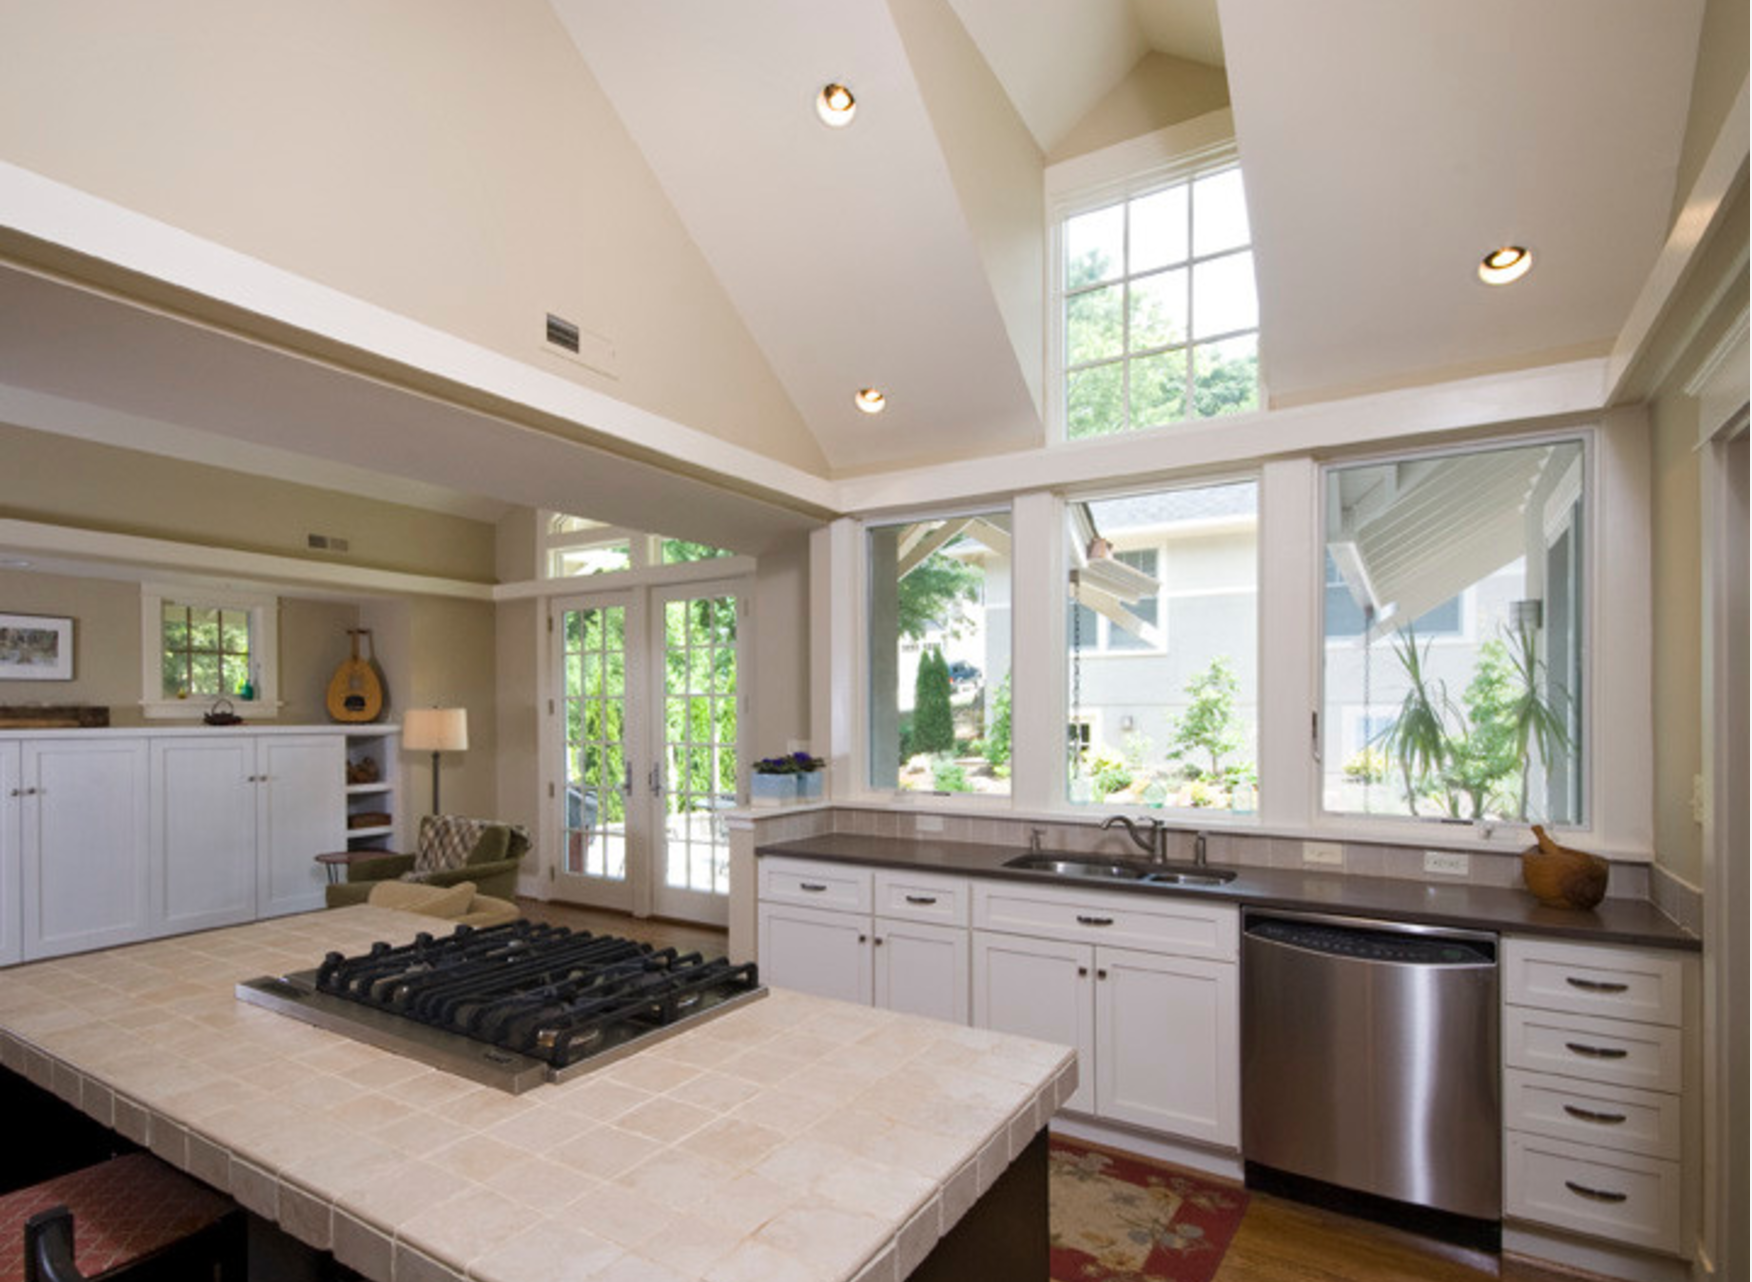 Large Windows No Upper Cabinets In Kitchen Cottage Interiors Upper Cabinets Large Windows